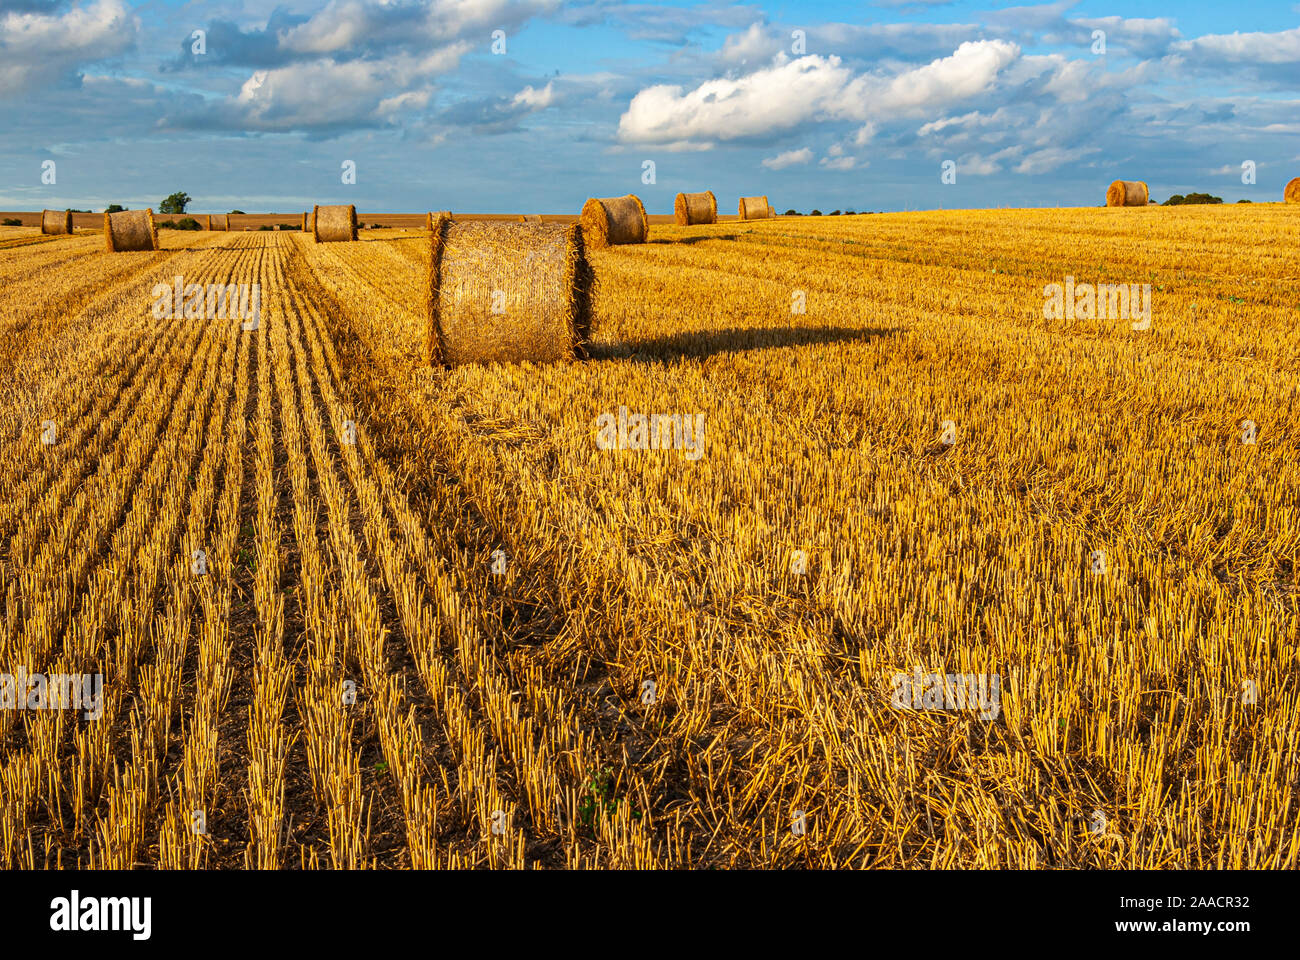 Bales of straw on a harvested grainfield at the end of summer. Stock Photo